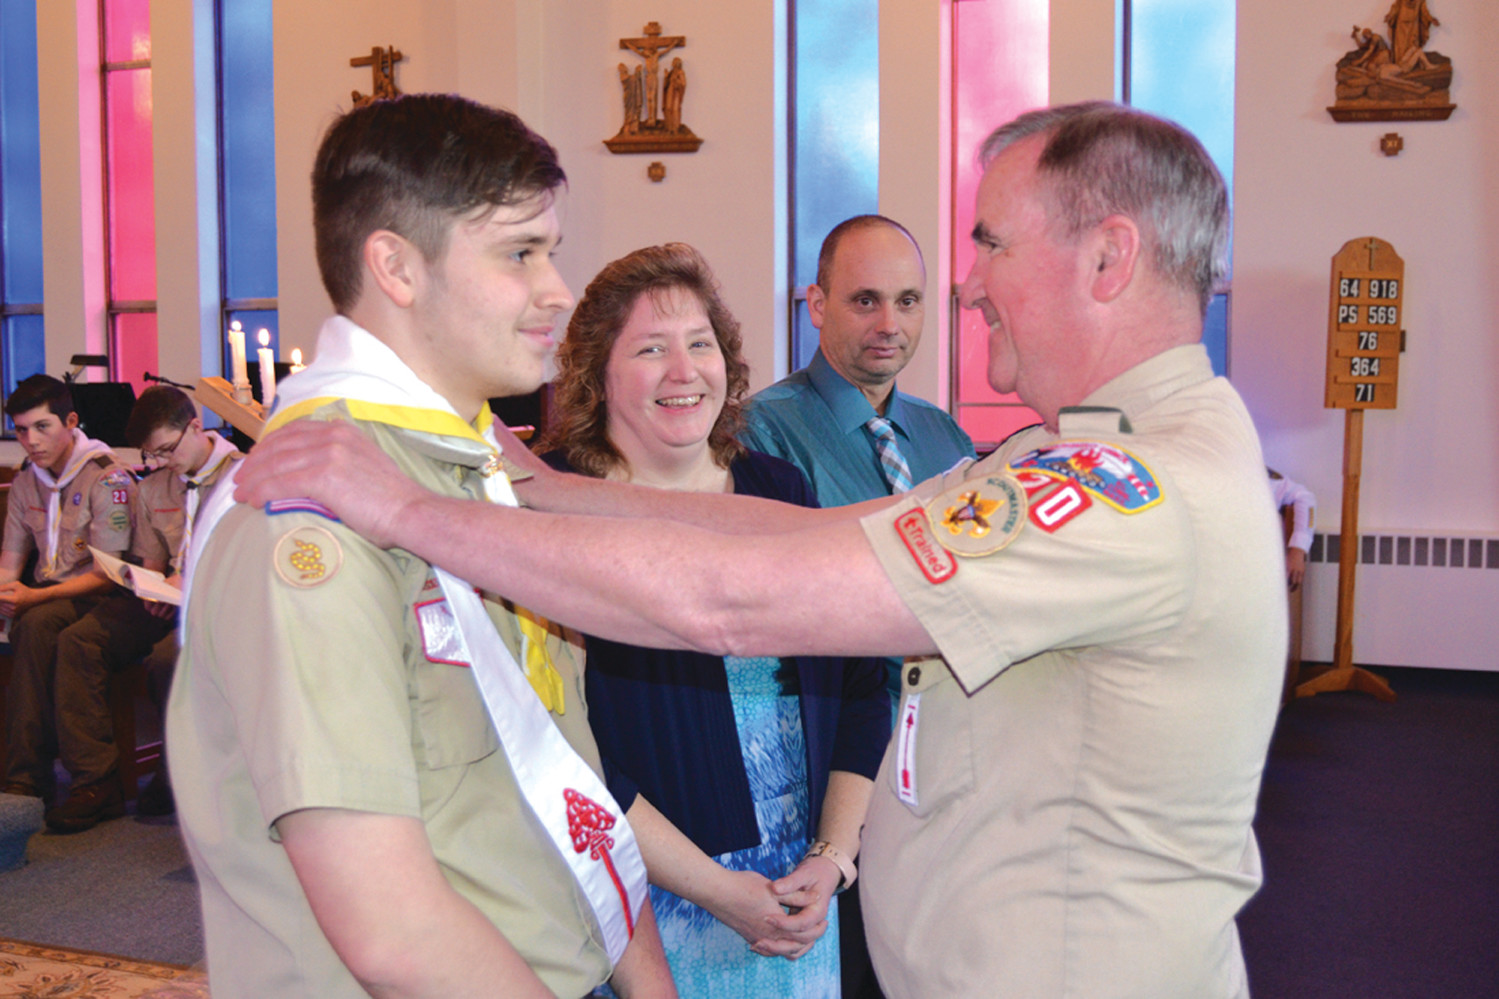 DUBBED IN: Troop 20 Scoutmaster David Curtin performs the traditional shoulder pat on Patrick, signifying his advancement to the rank of Eagle.